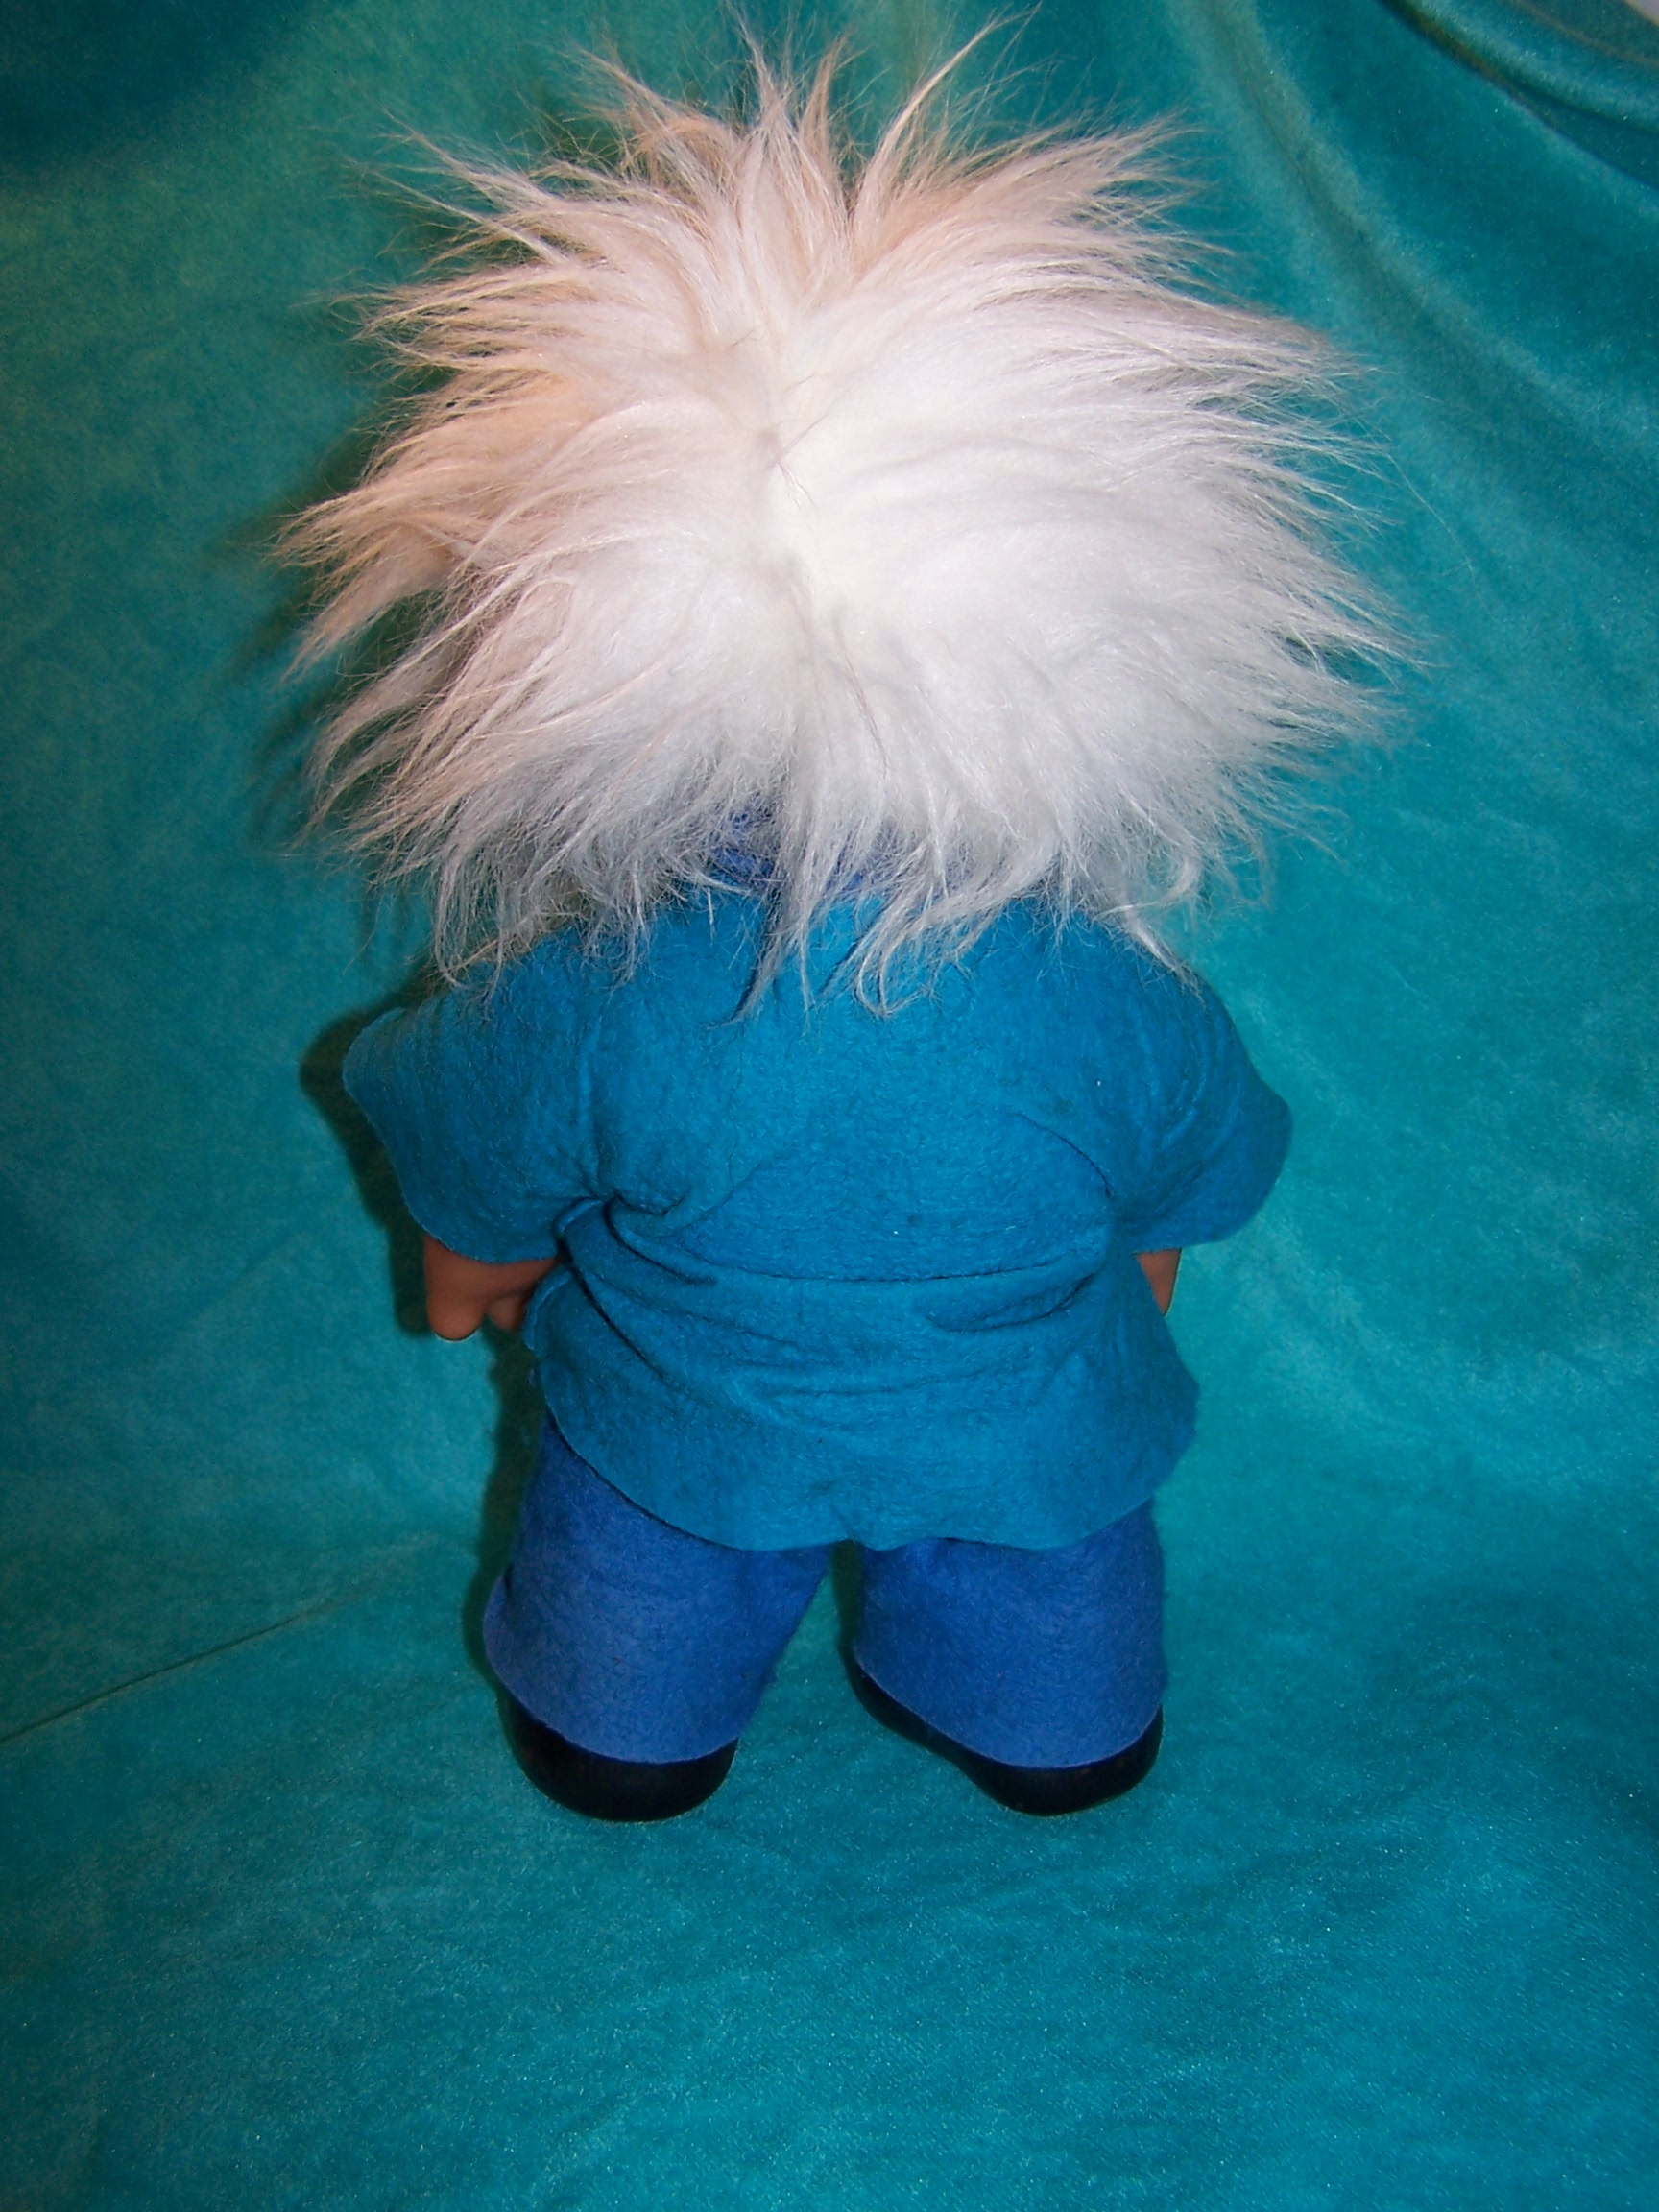 Image 3 of Norfin Troll Doll Grandpa, Thomas Dam, 1977 Denmark